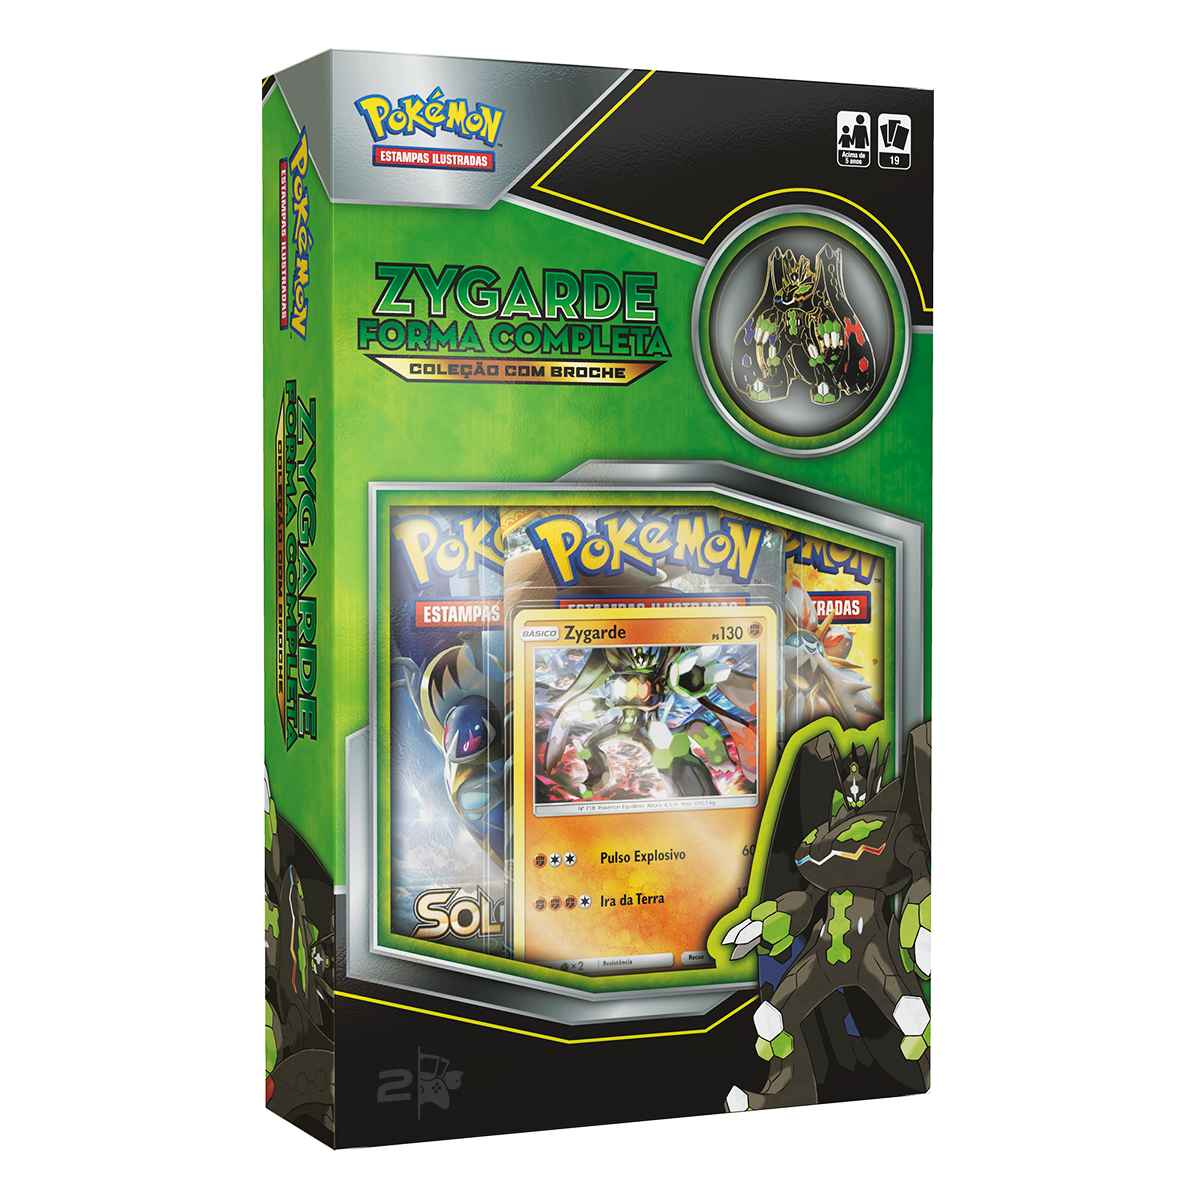 Pokemon Mini Box Zygarde Forma Completa